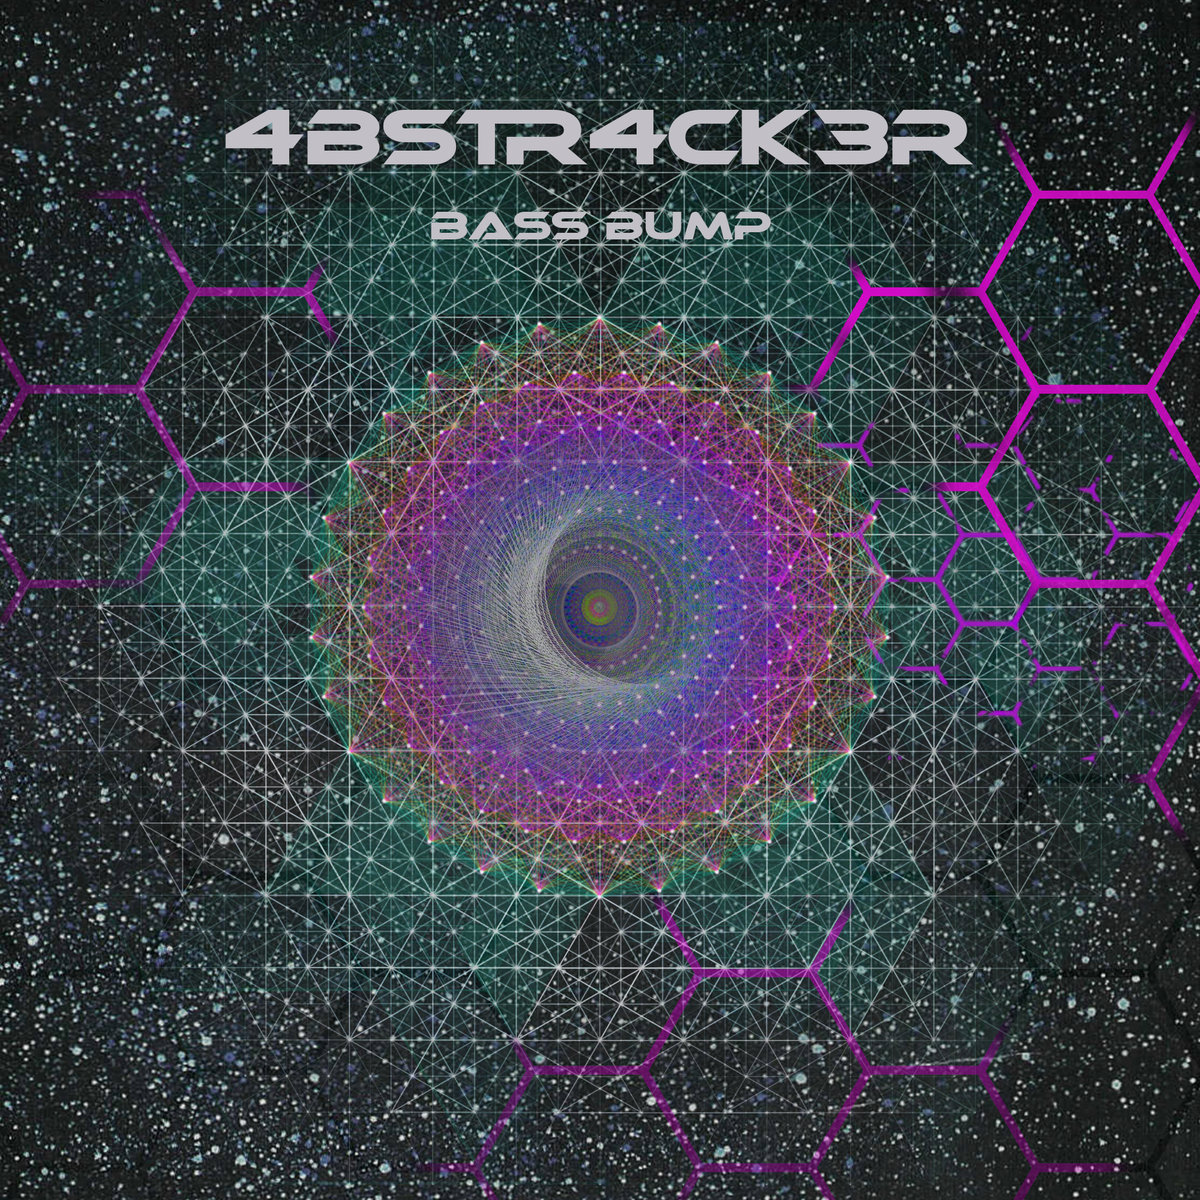 4bstr4ck3r - Mutant Swing Wiggle @ 'Bass Bump' album (bass, electronic)